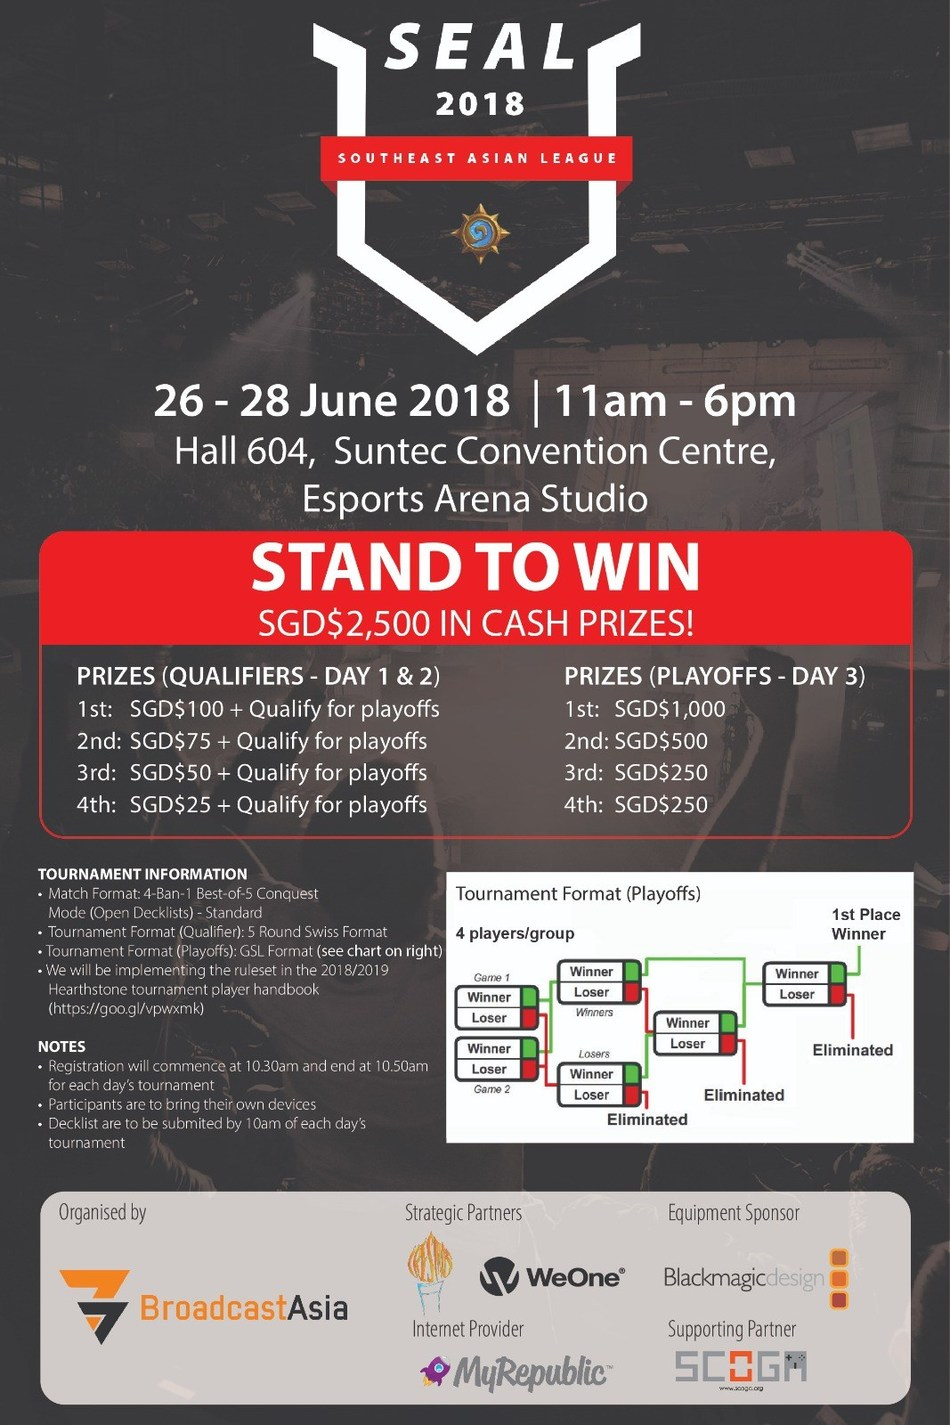 Southeast Asian League 2018 at BroadcastAsia